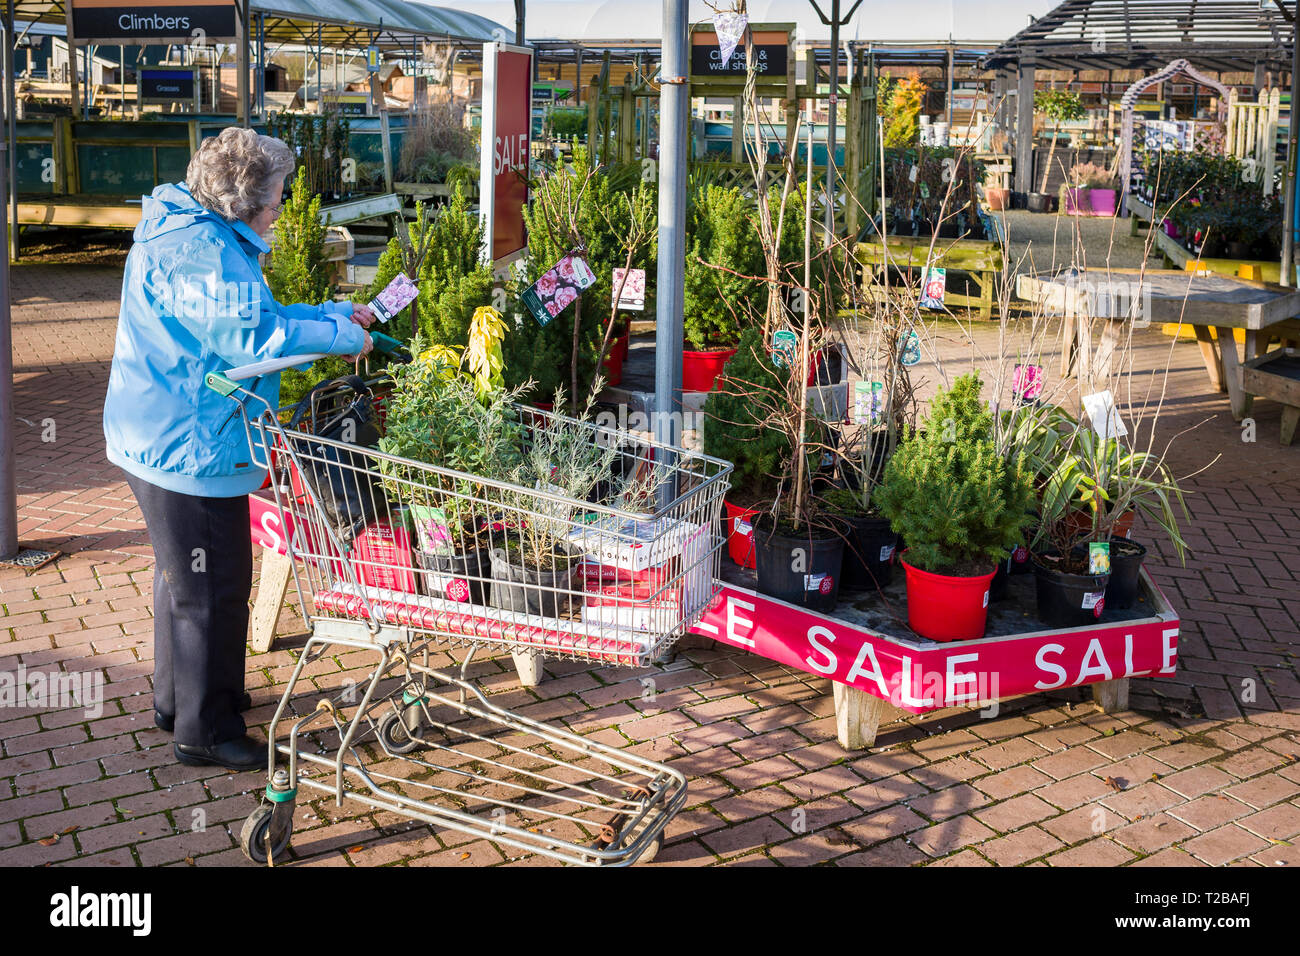 A lady pensioner considering plants for sale  at a garden centre in January at clearance prices in the UK - Stock Image